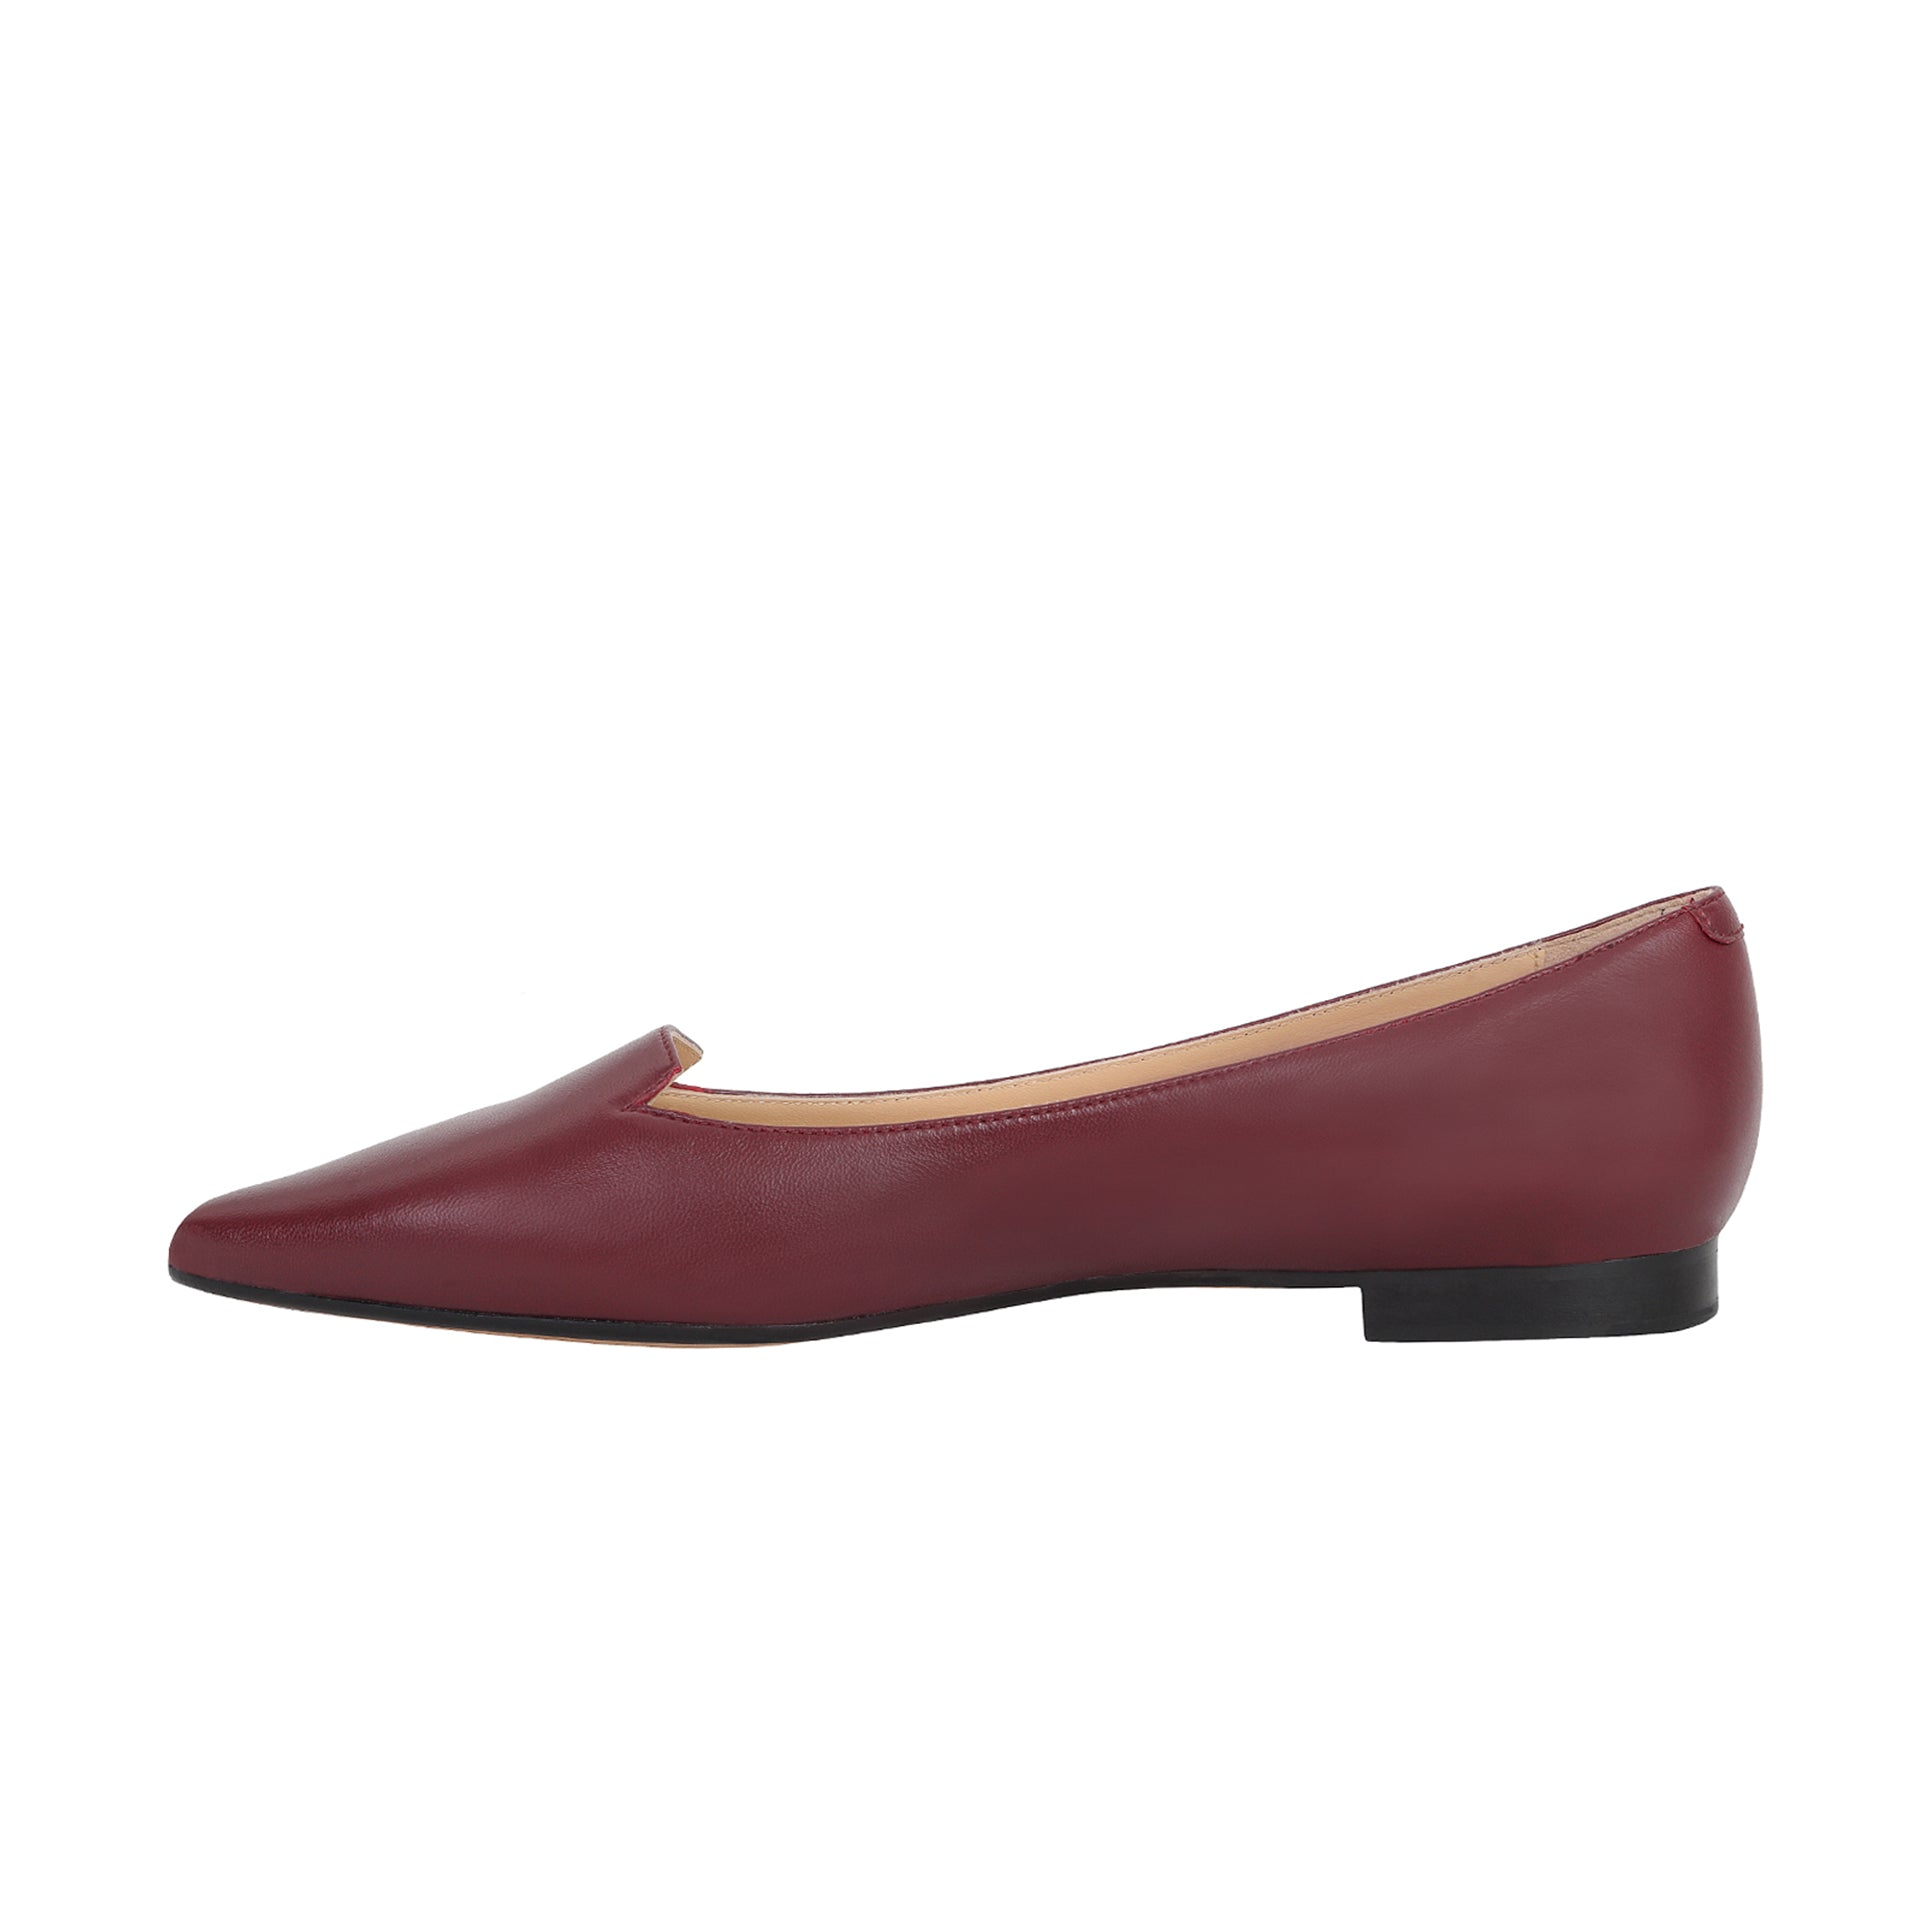 The Mira Loafer